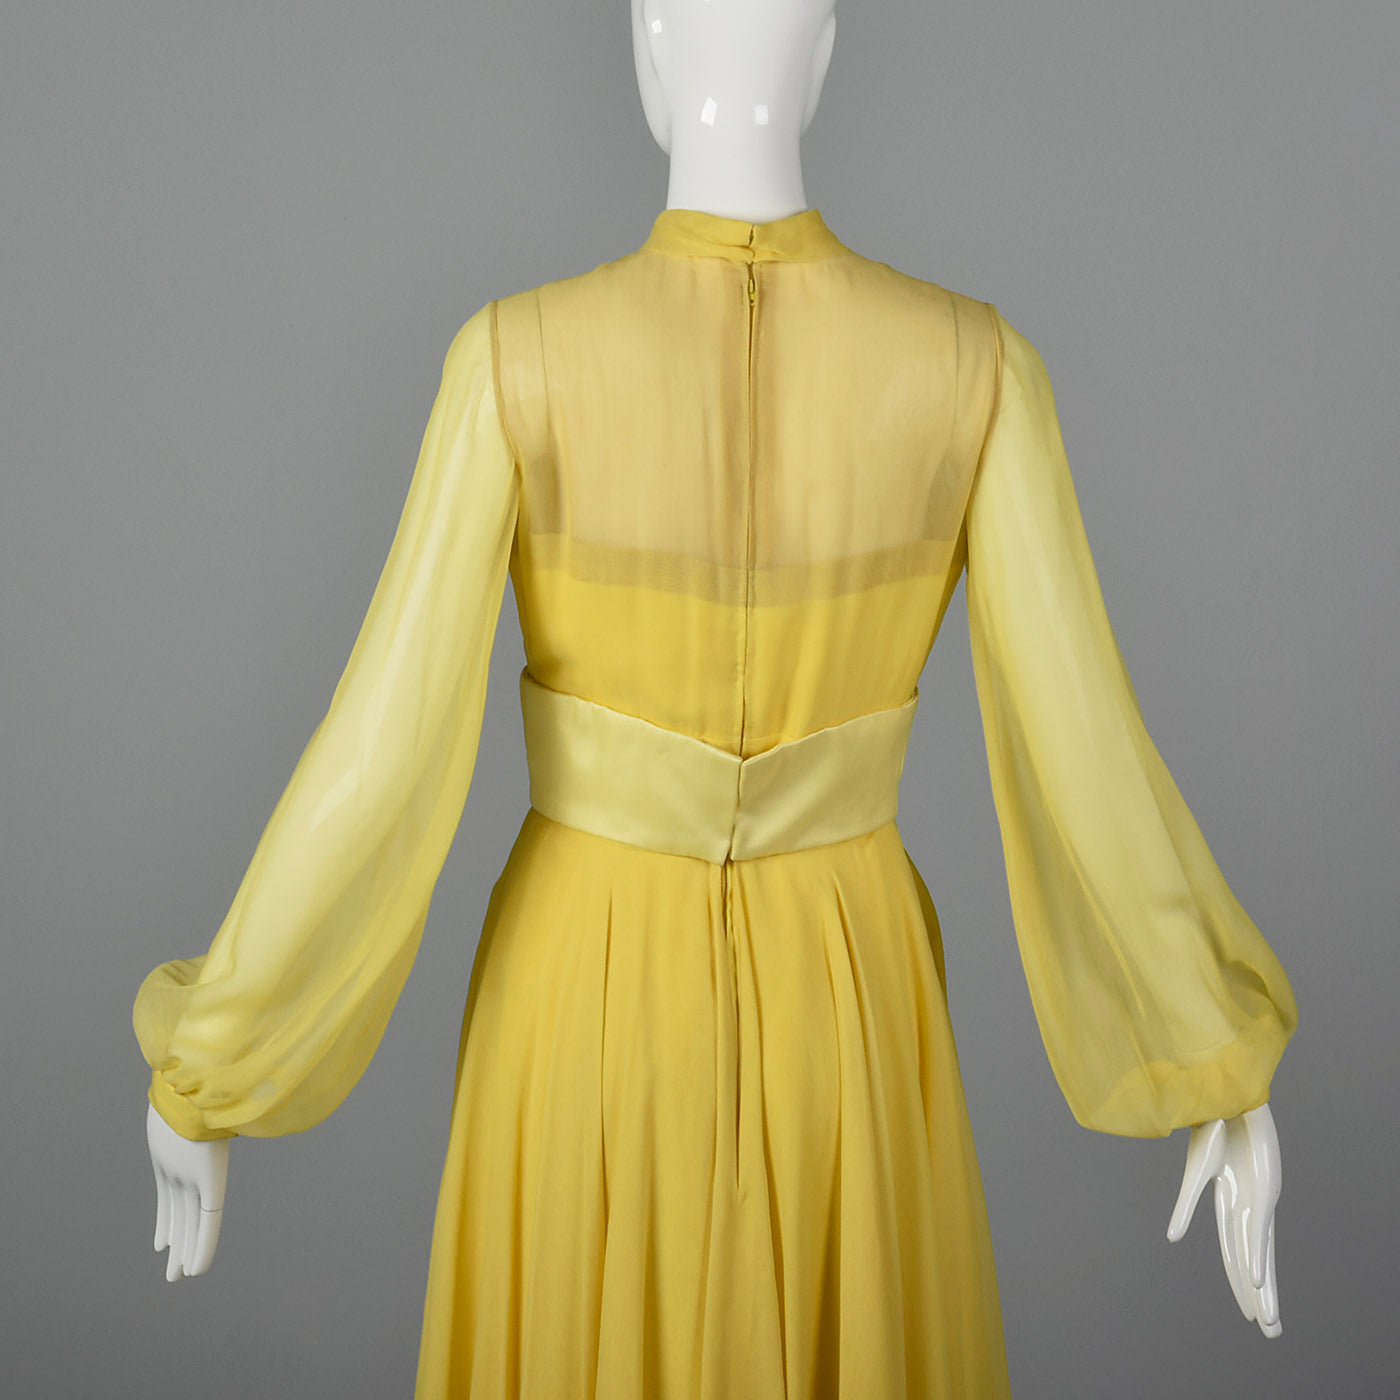 Elegant 1970s Travilla Yellow Silk Chiffon Dress